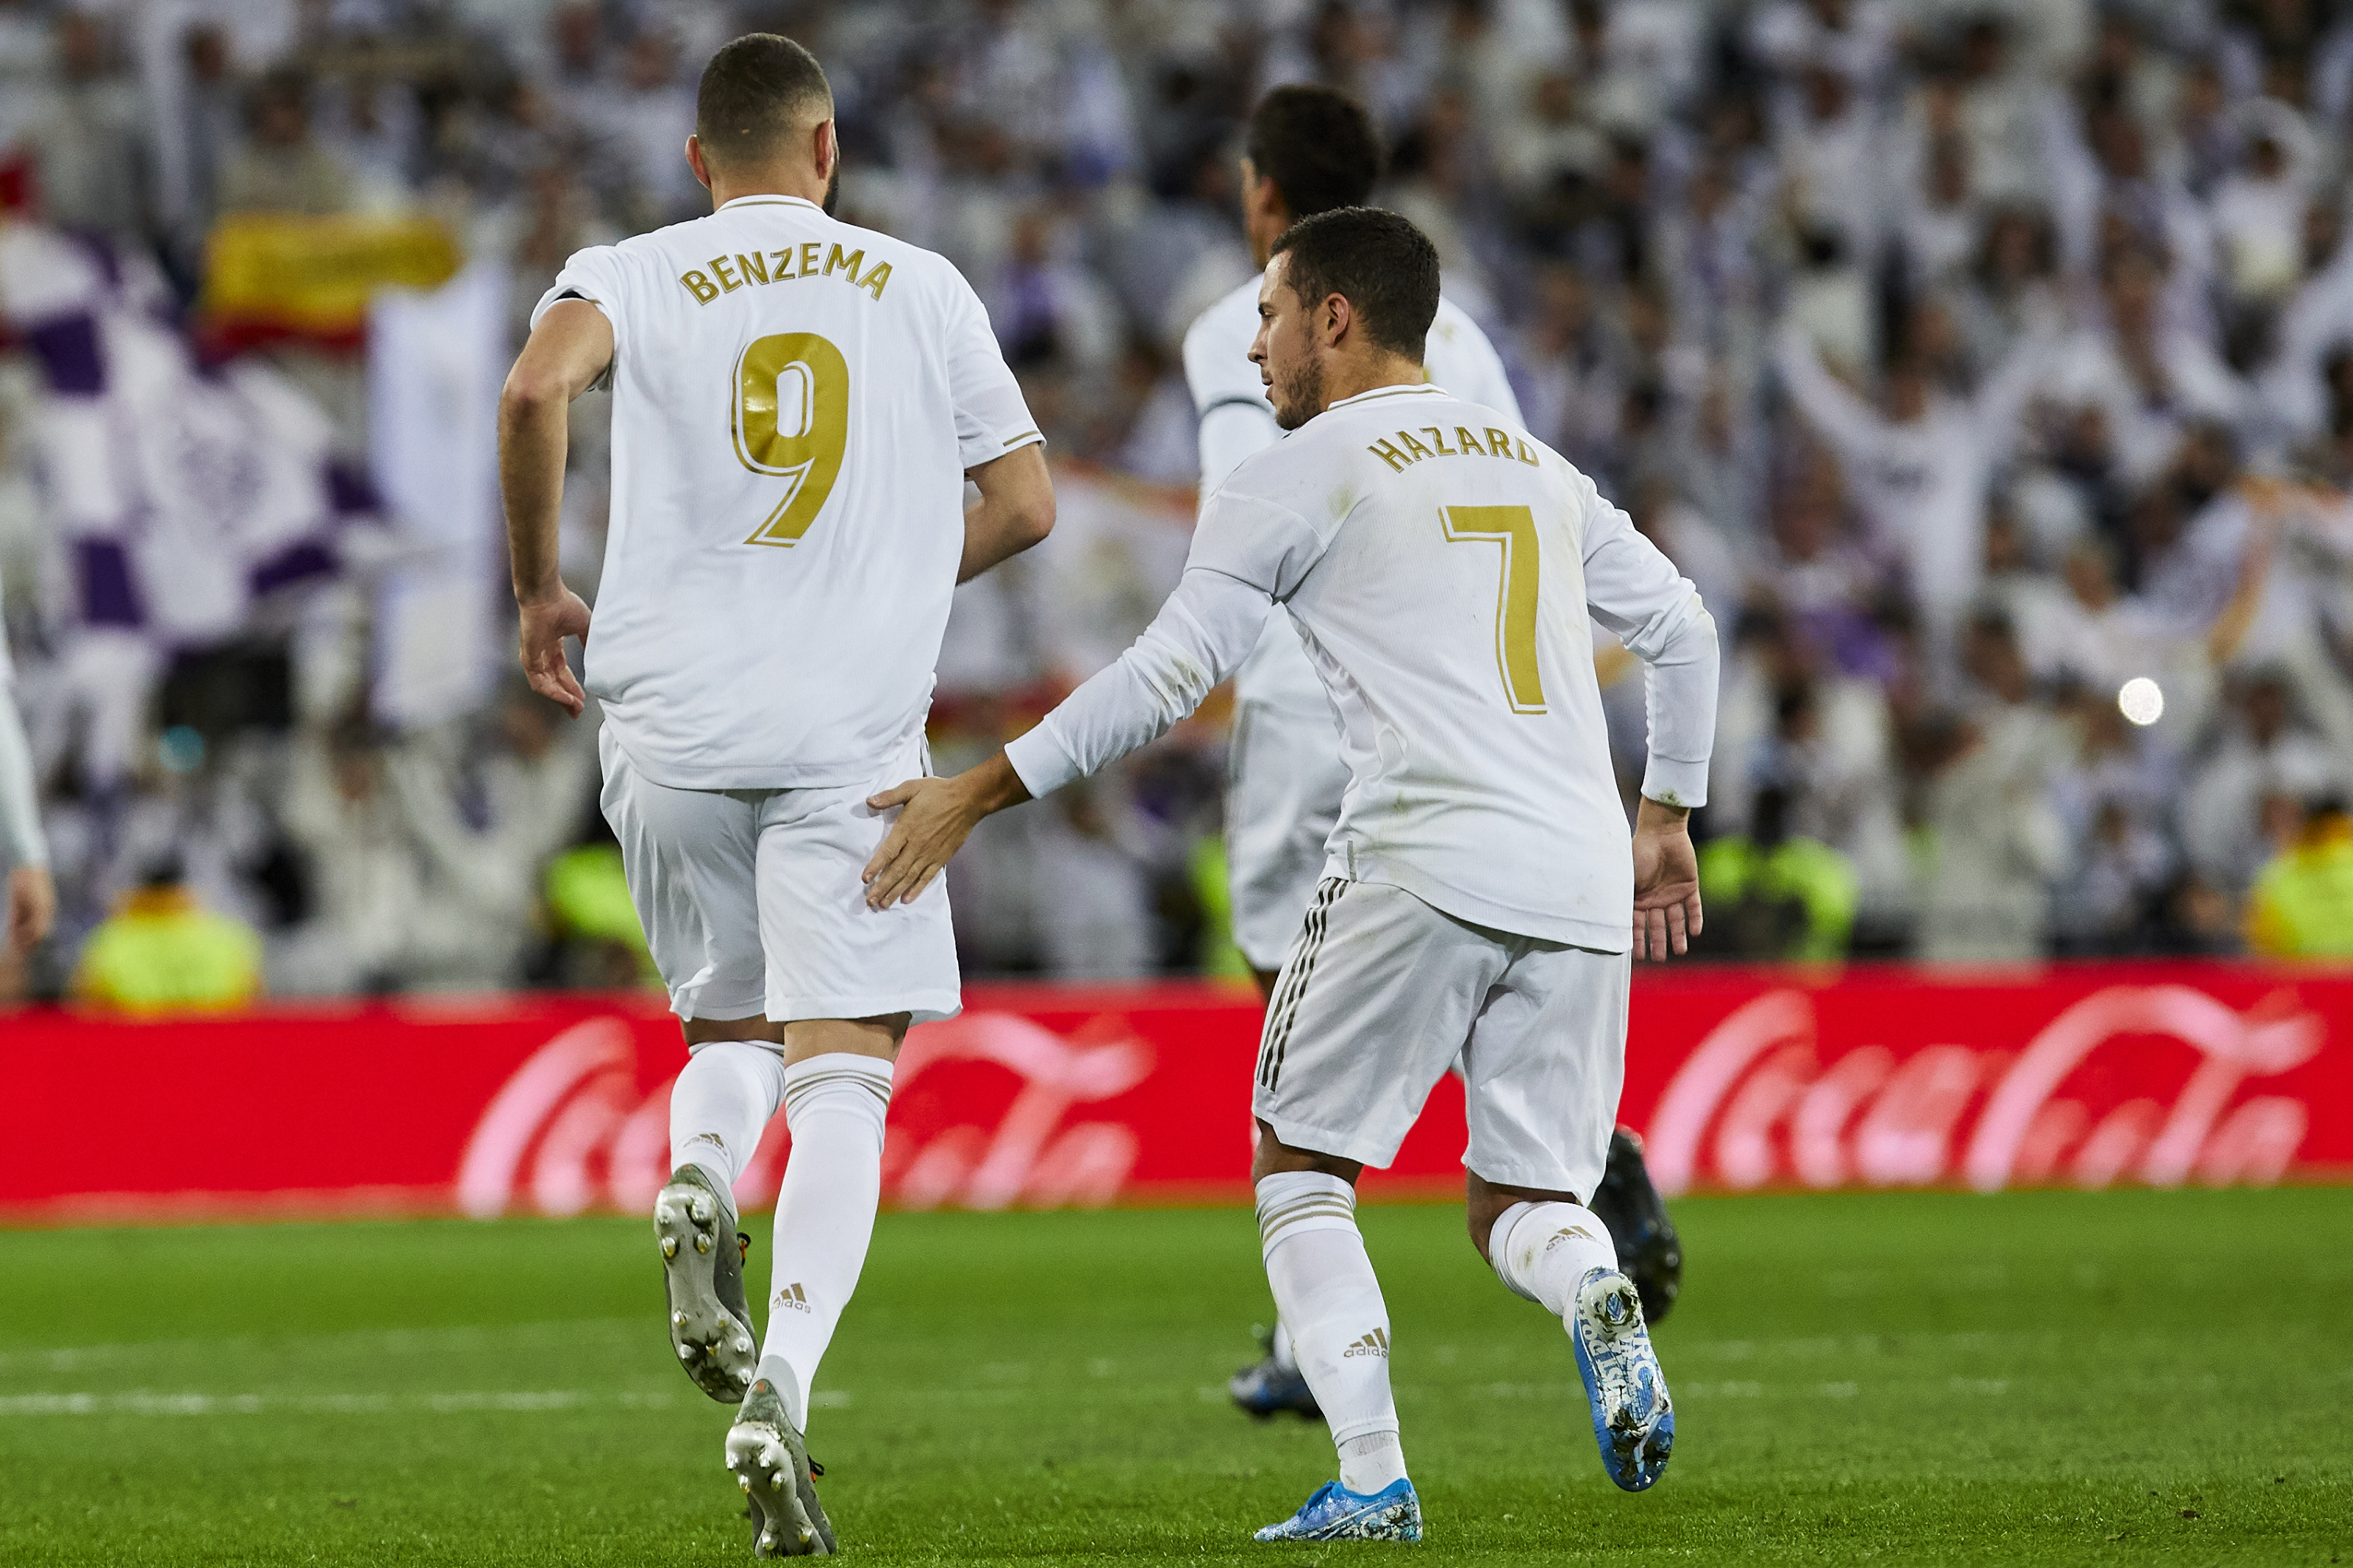 Real Madrid: The Eden Hazard, Karim Benzema connection is unstoppable